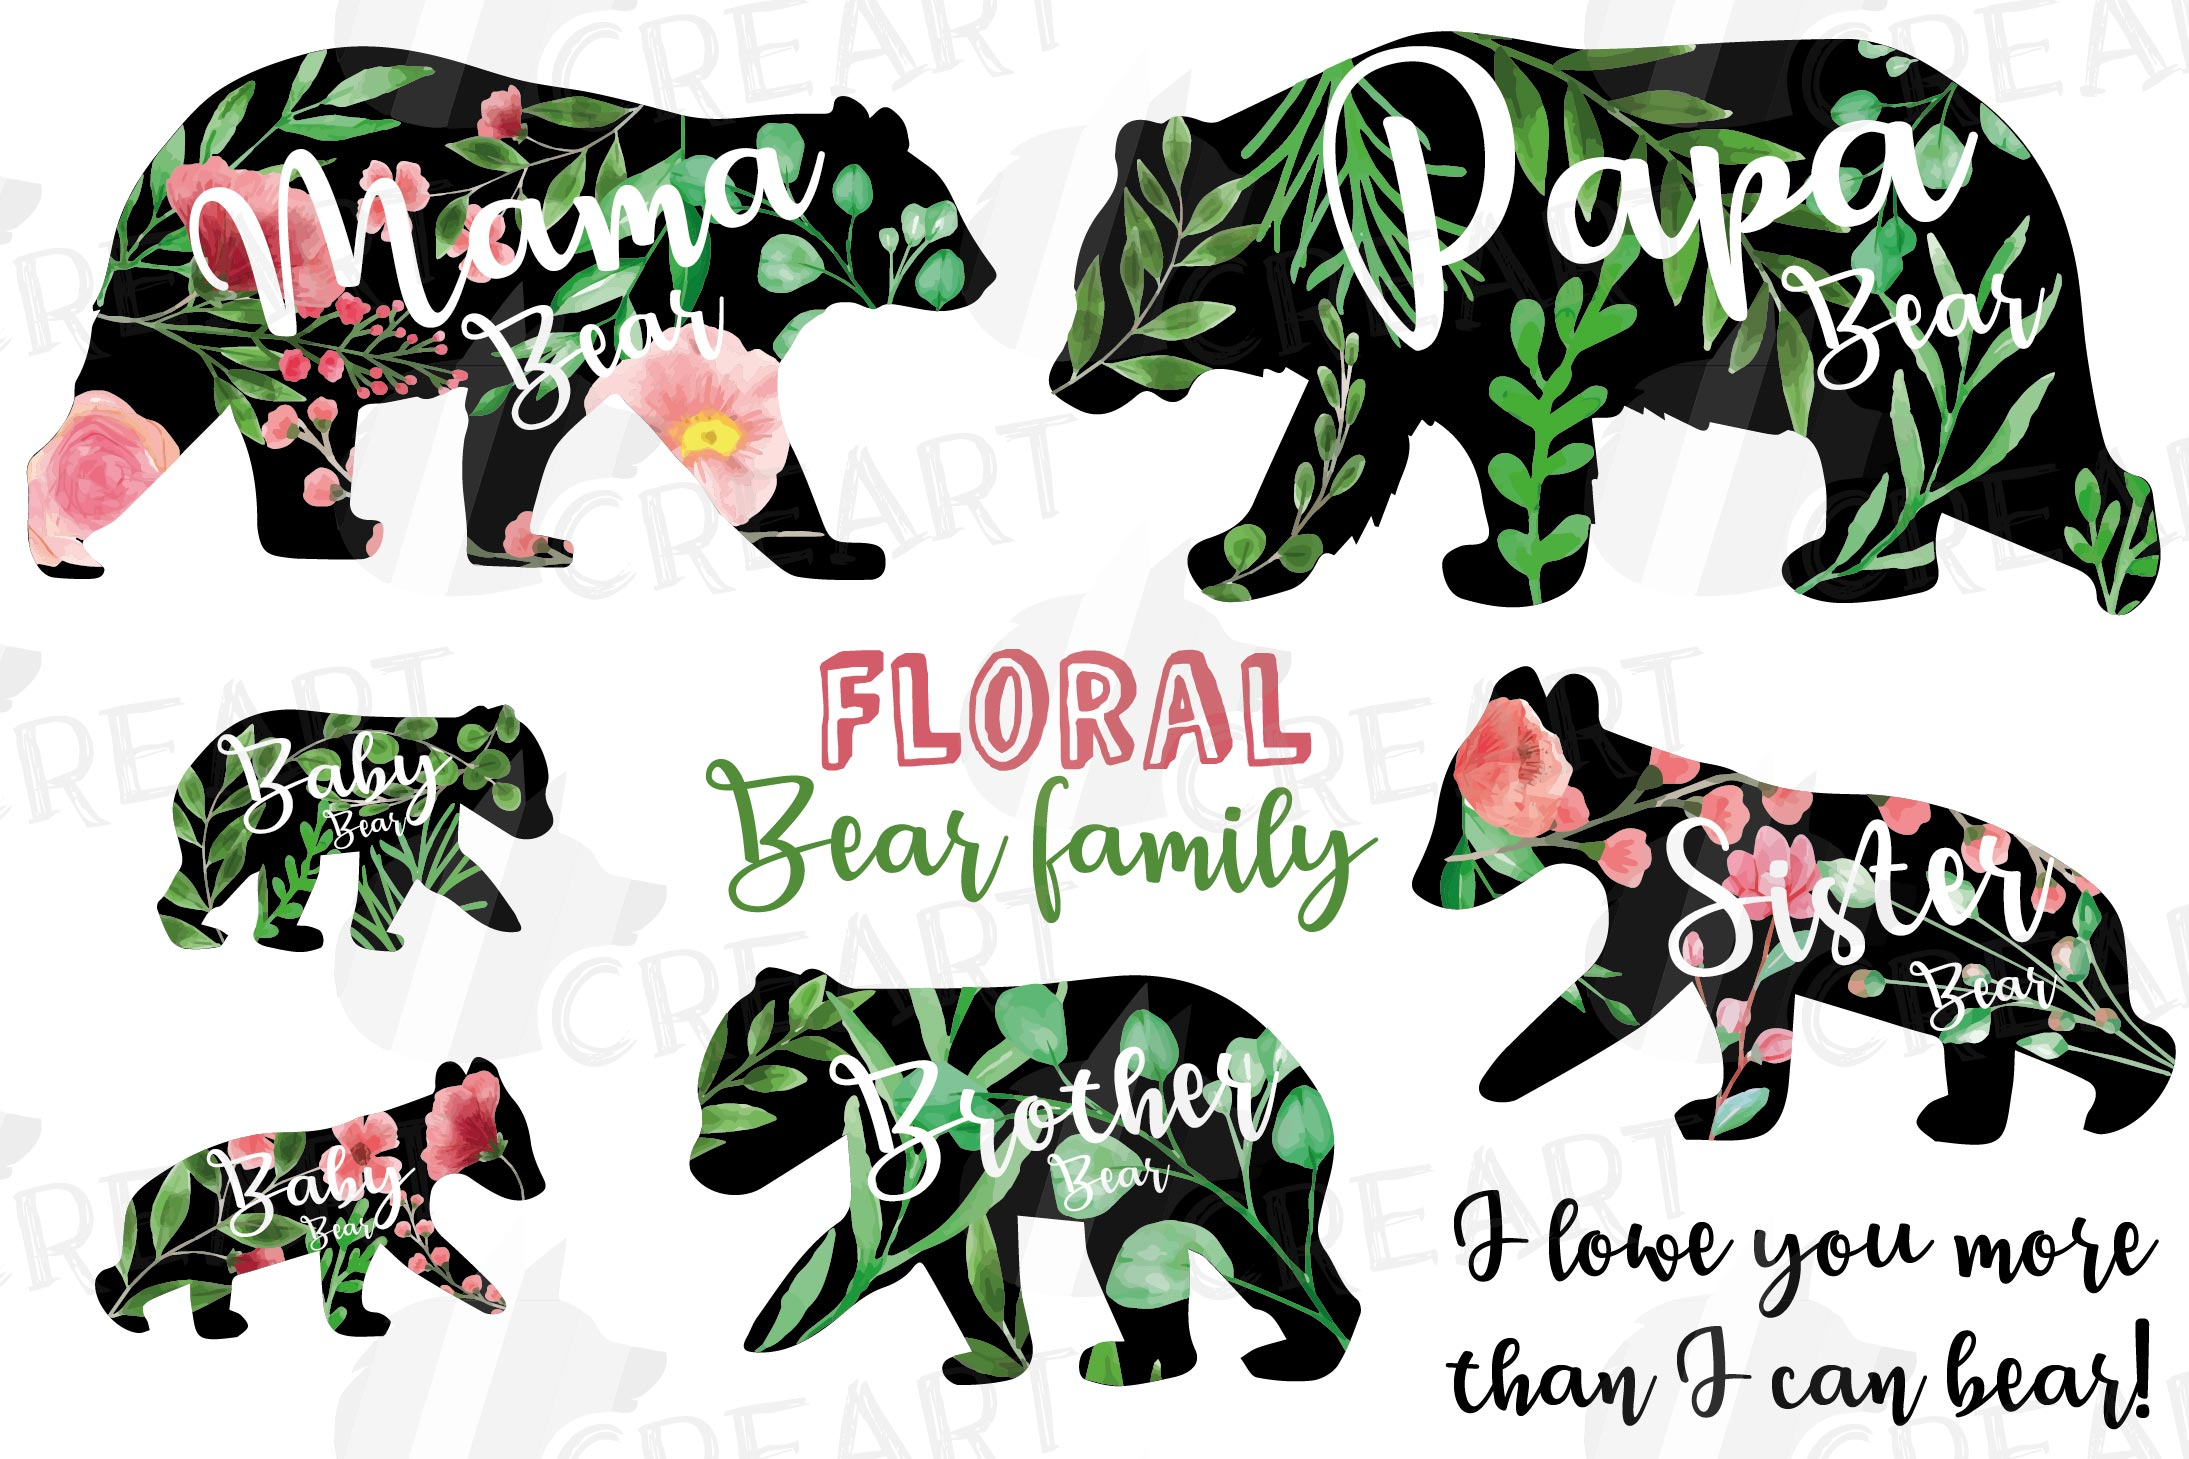 Floral bear family, sister, brother, baby, papa and mama example image 1